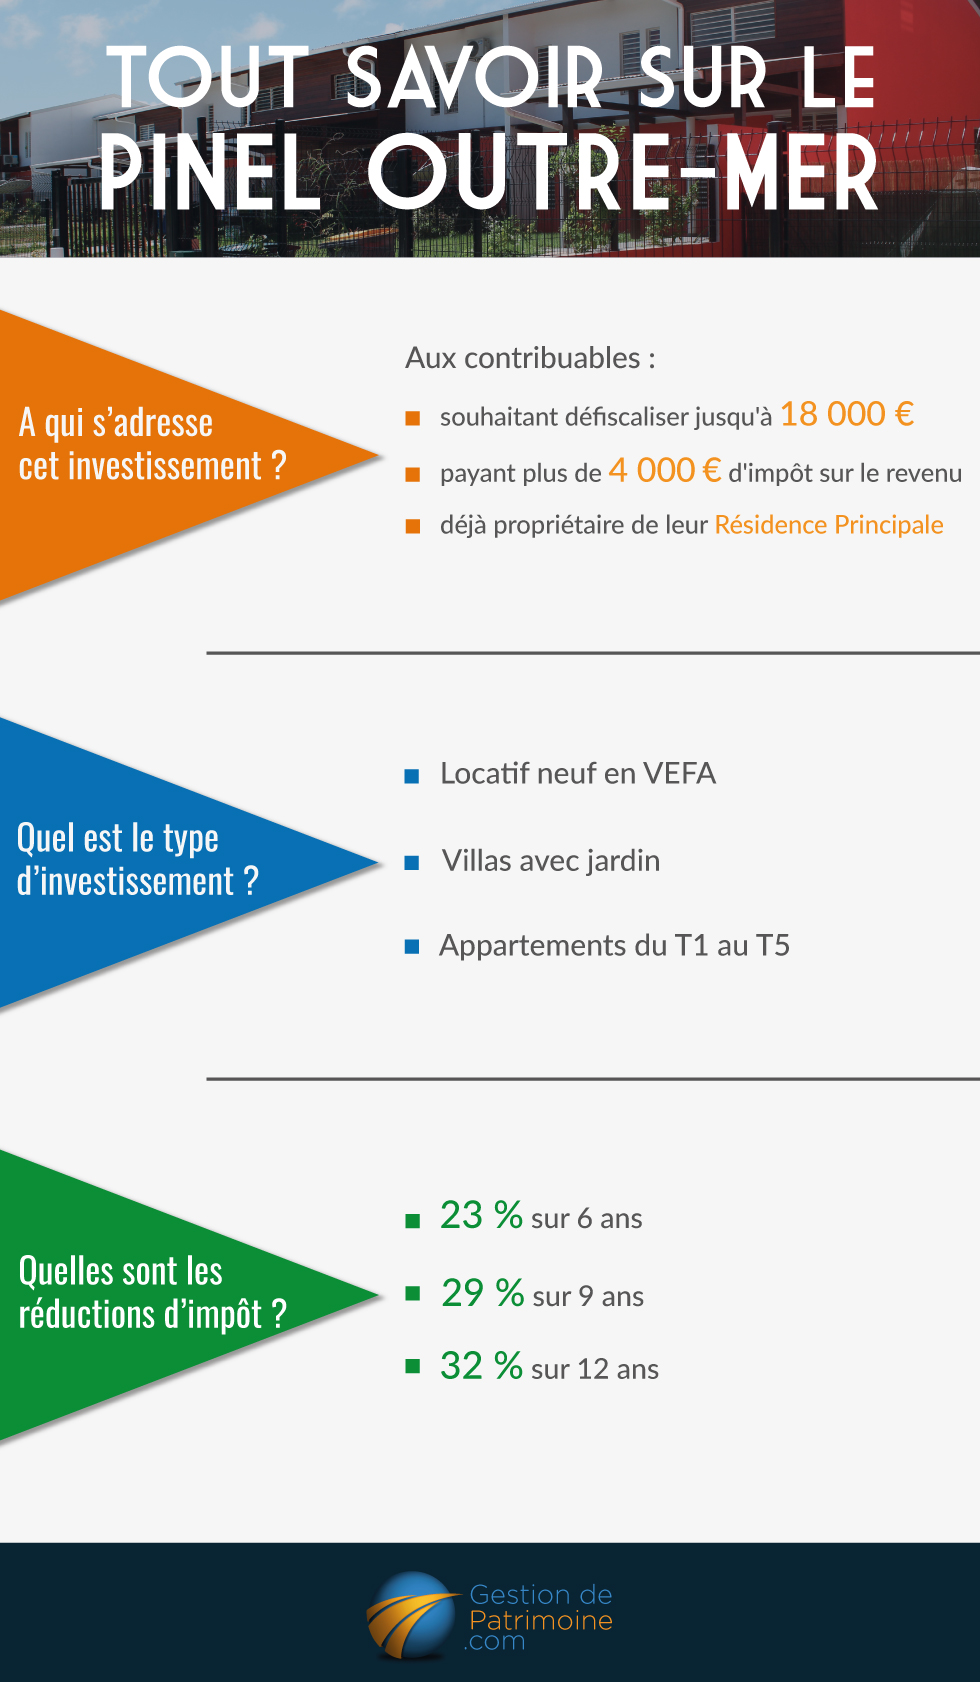 Infographie pinel Outre-mer